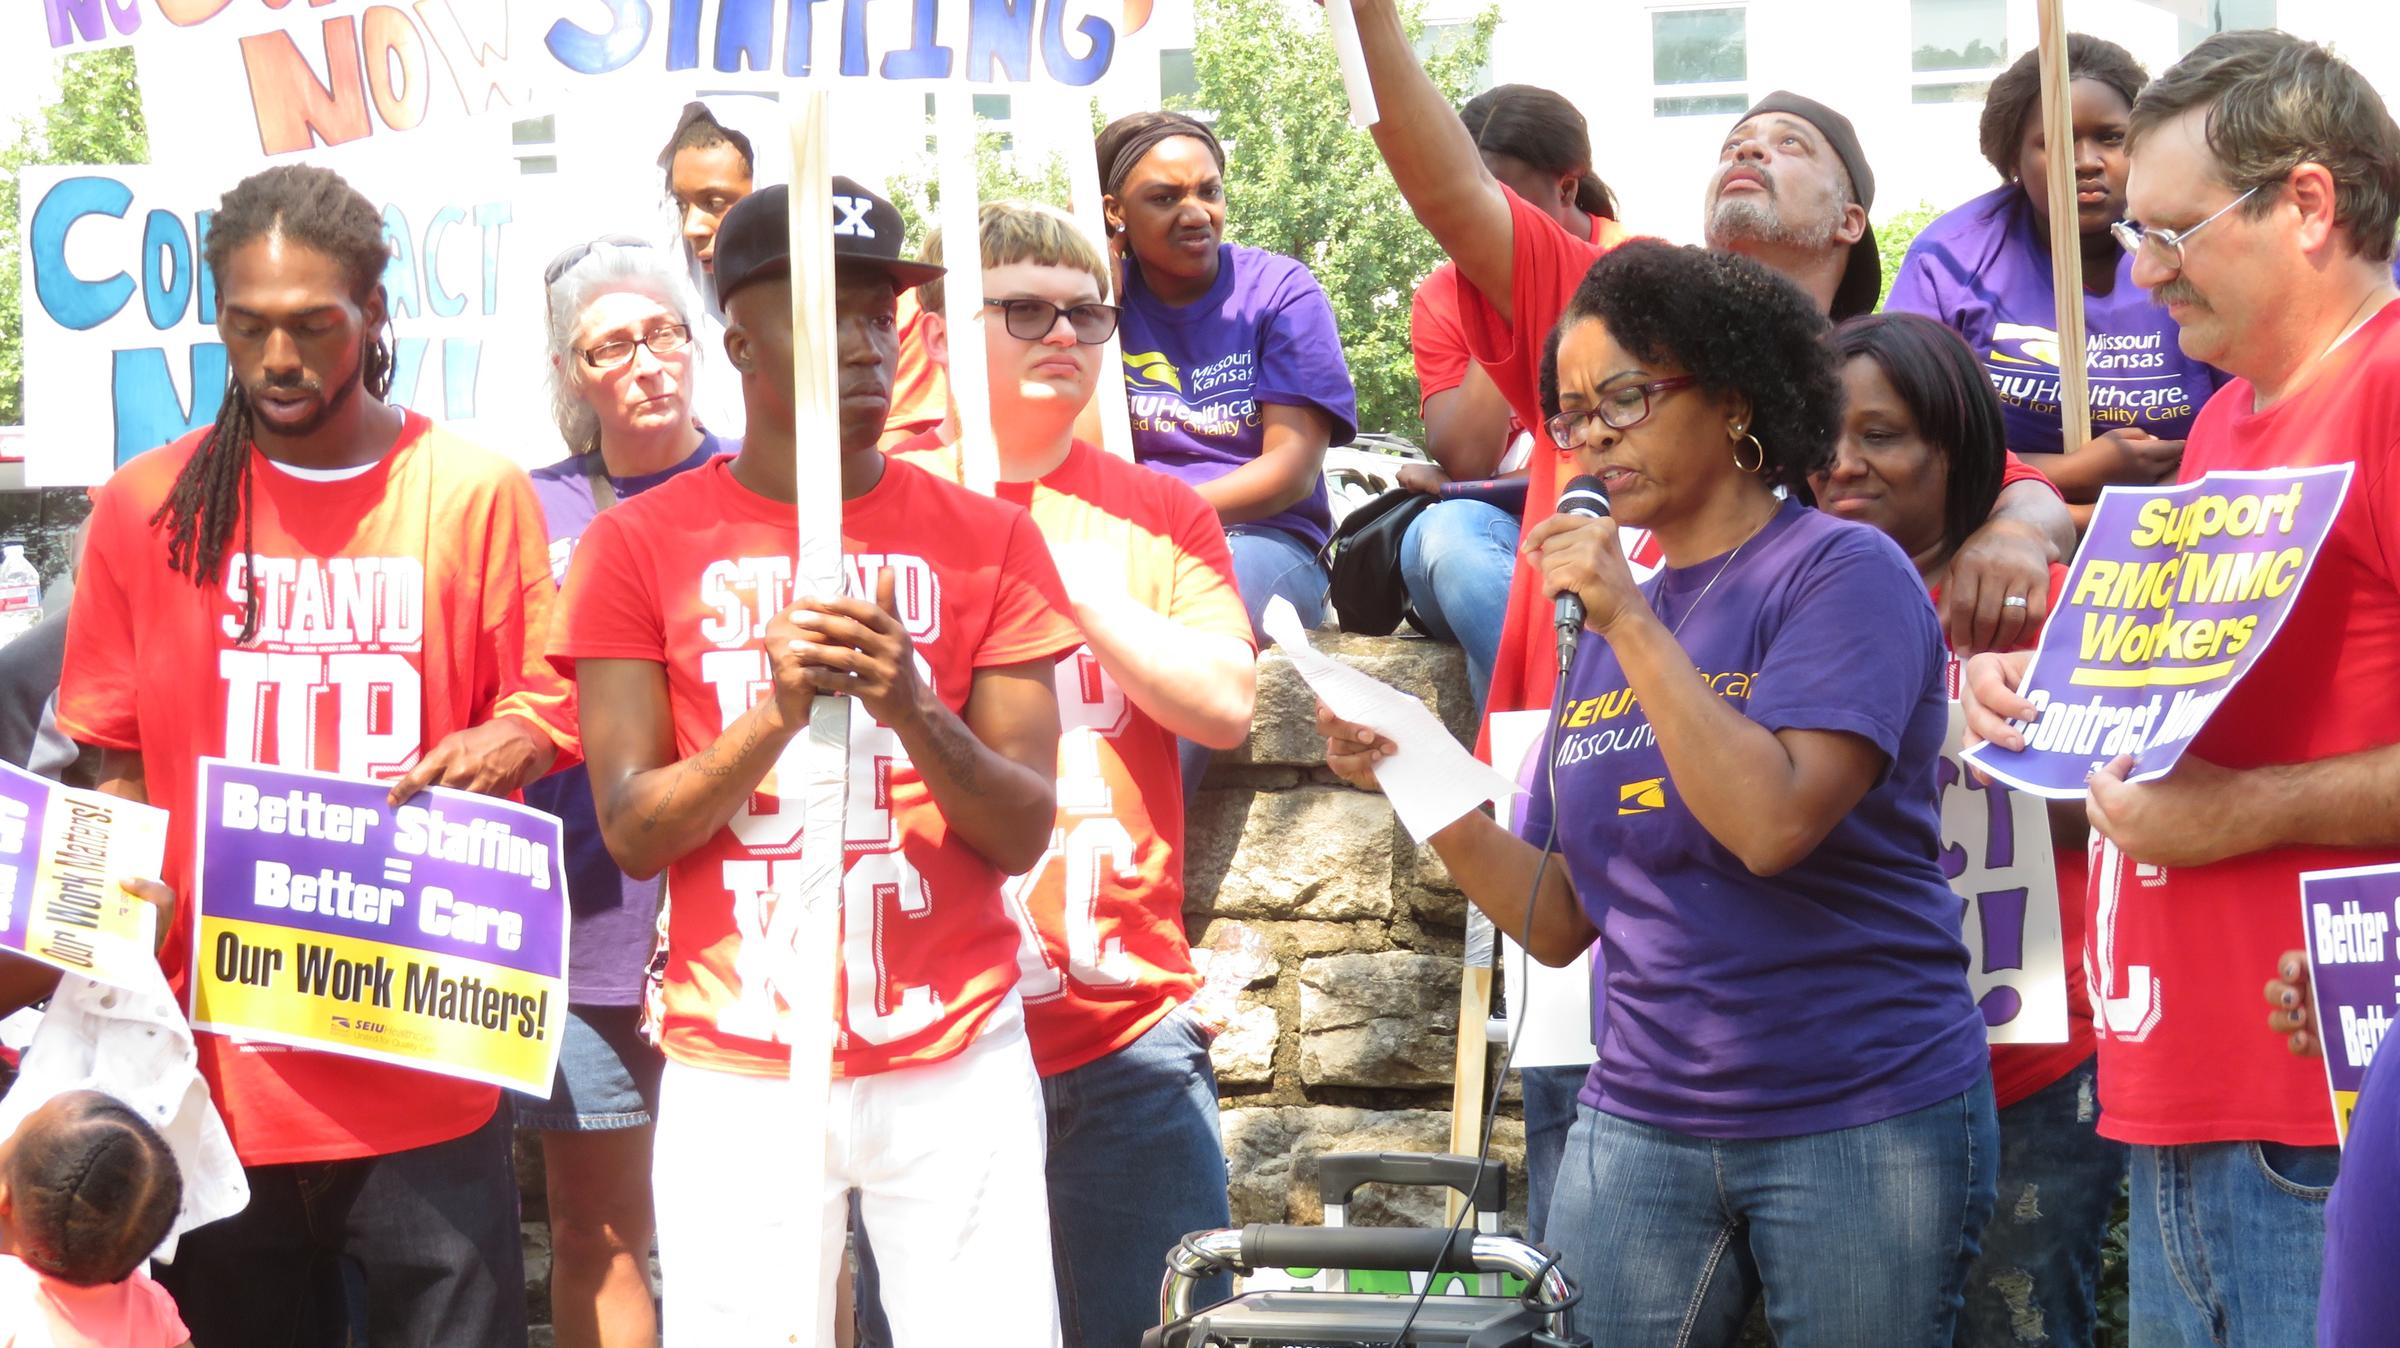 Research Medical Center employee and Service Employees International Union  member Dot Morgan (with microphone) gives a speech at the Labor Day rally.